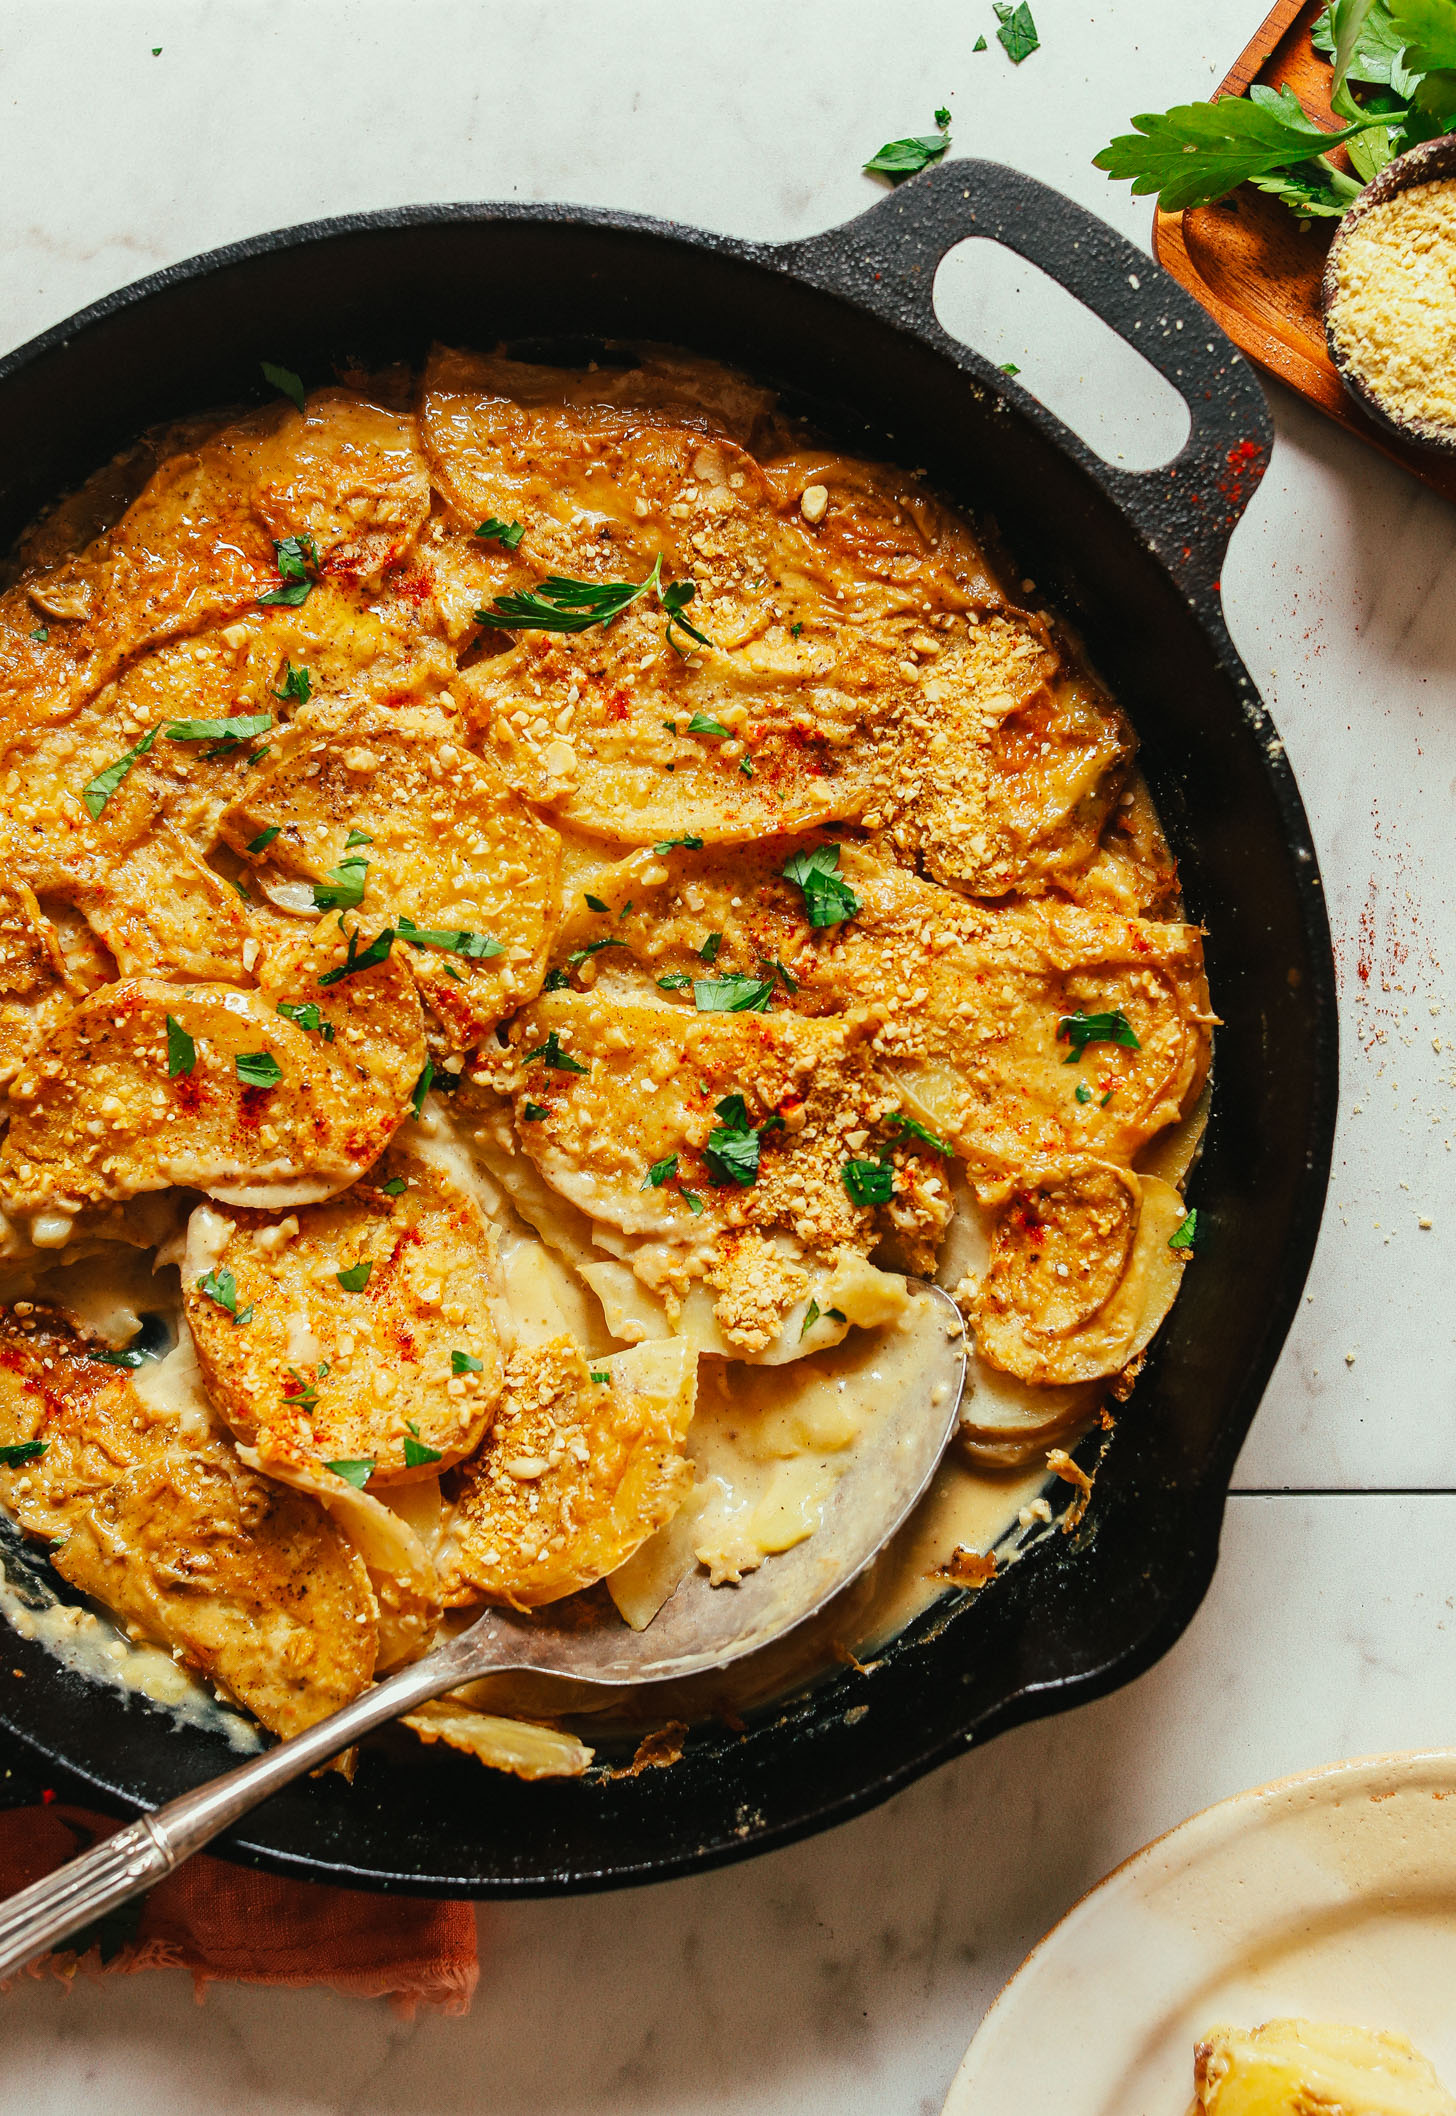 Cast-iron skillet filled with a batch of easy Vegan Scalloped Potatoes